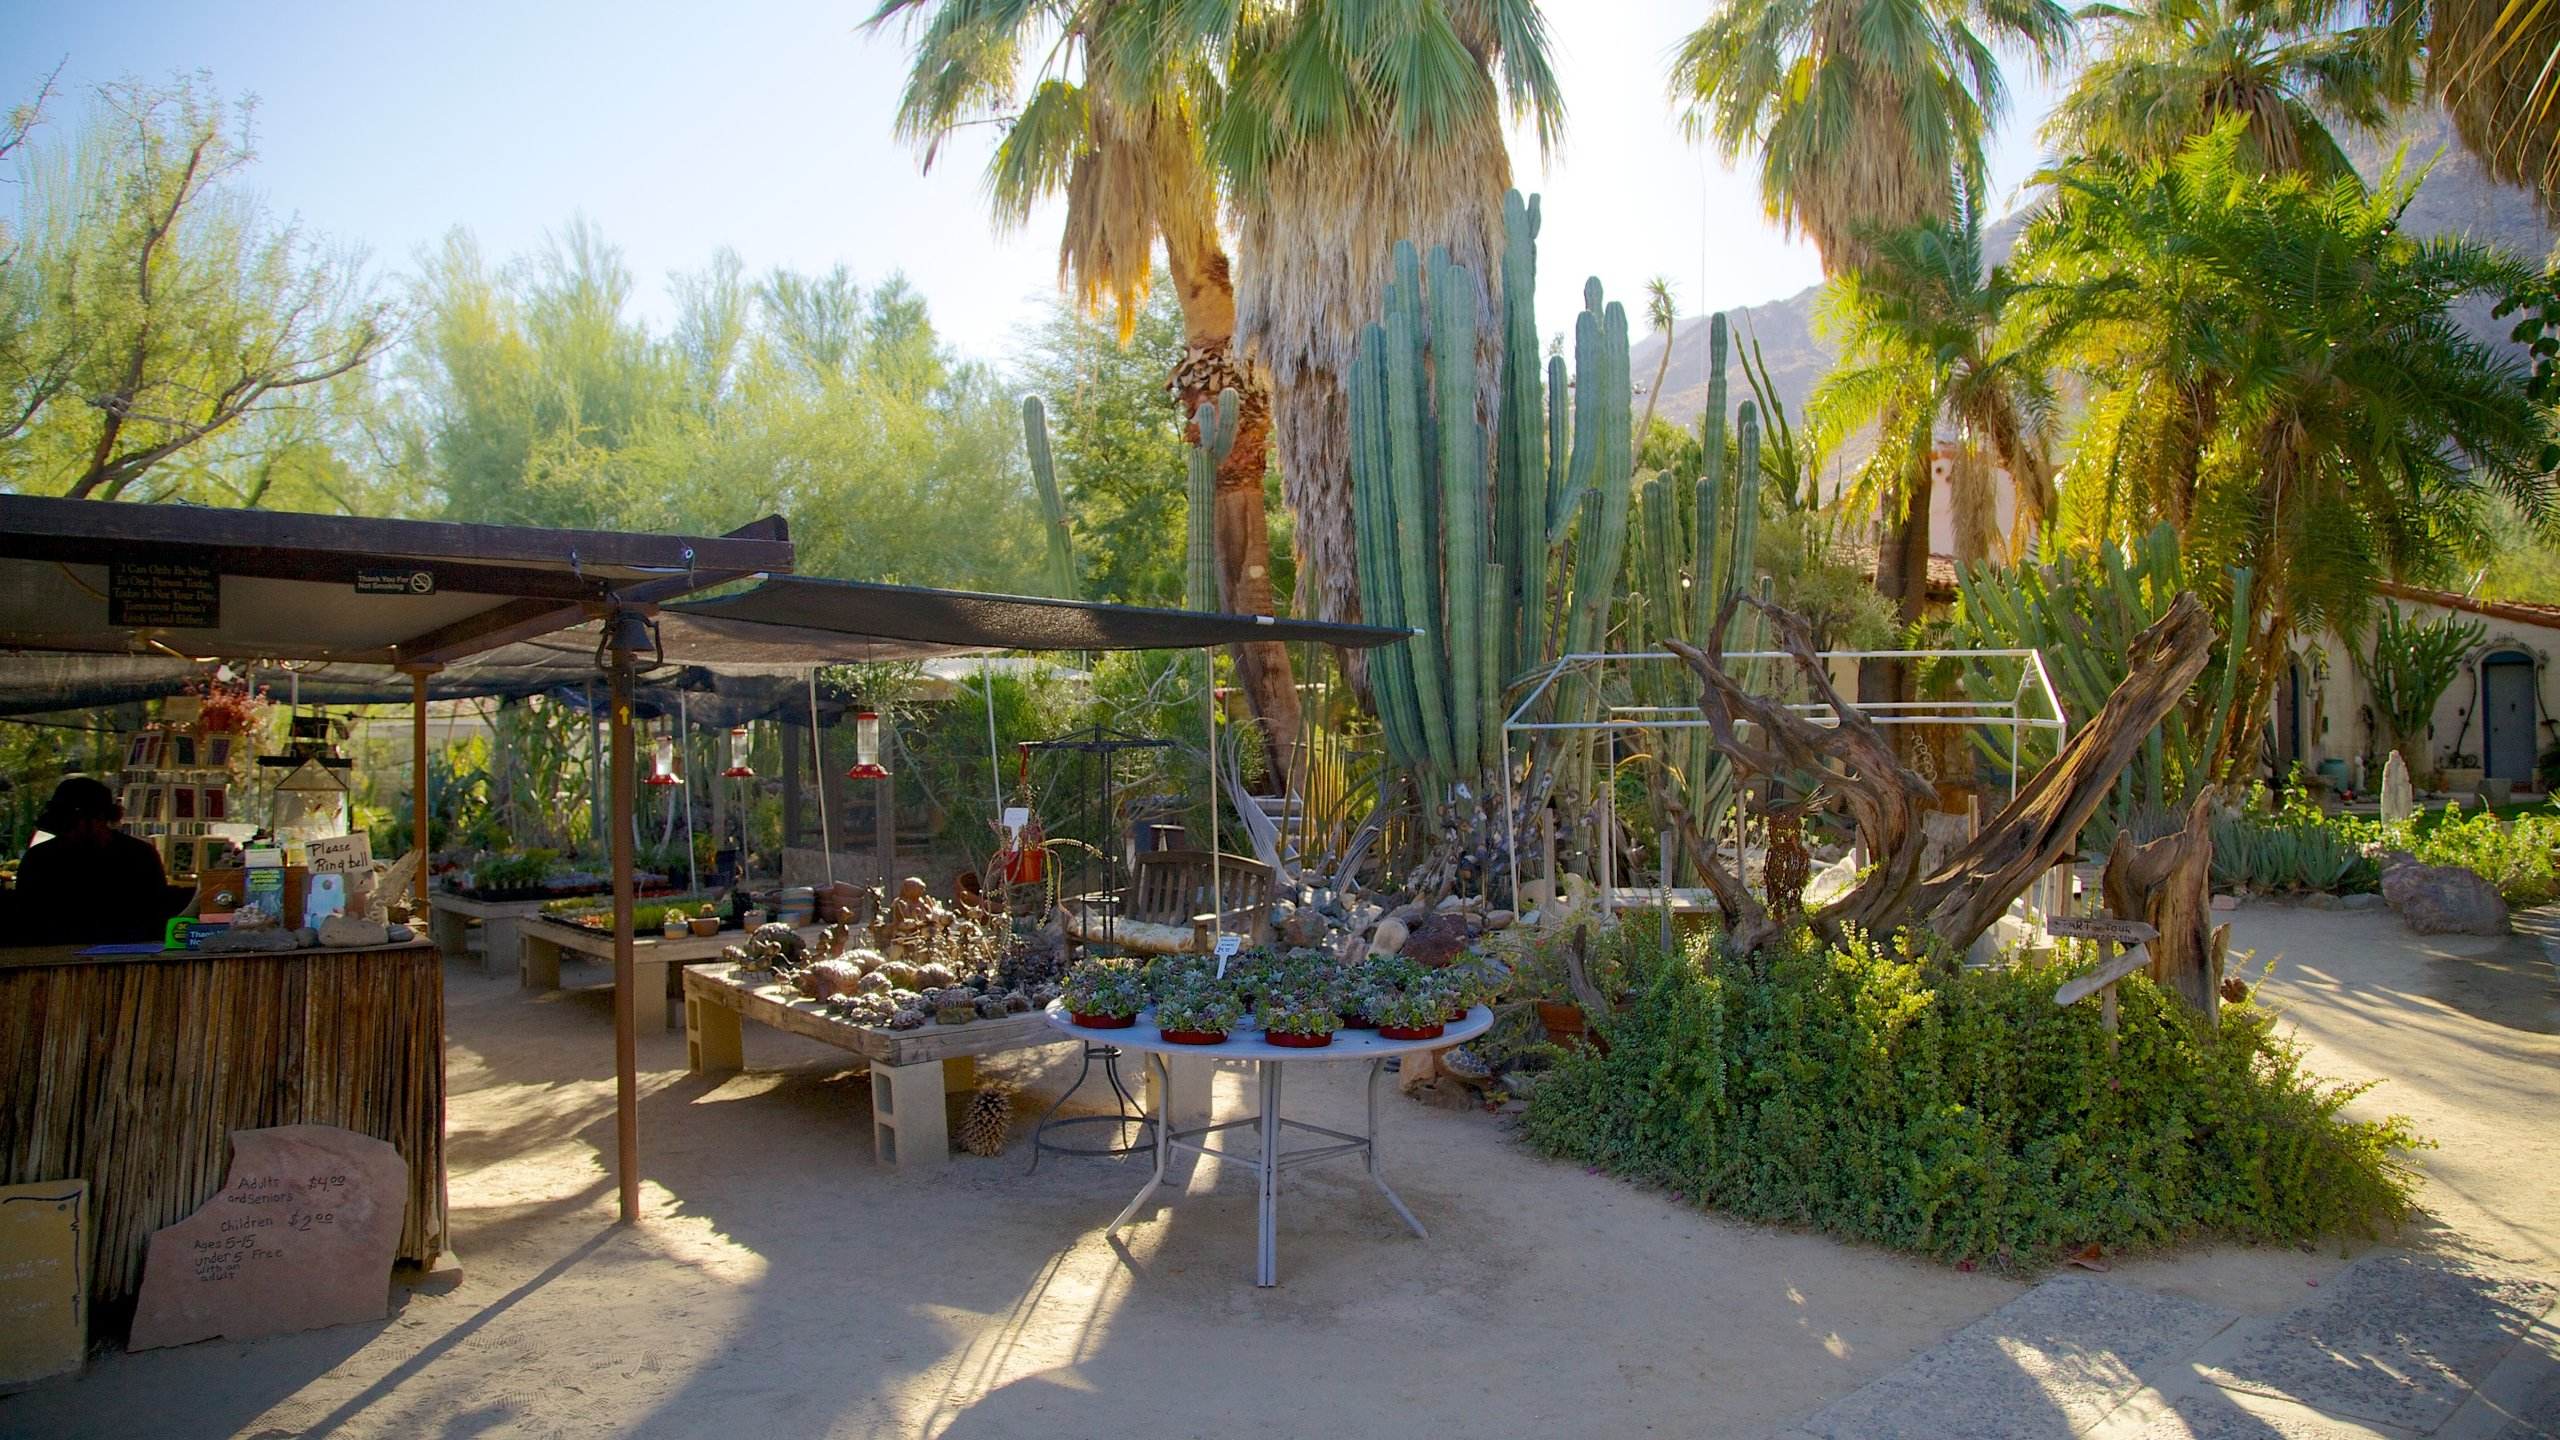 The Mesa, Palm Springs, California, United States of America